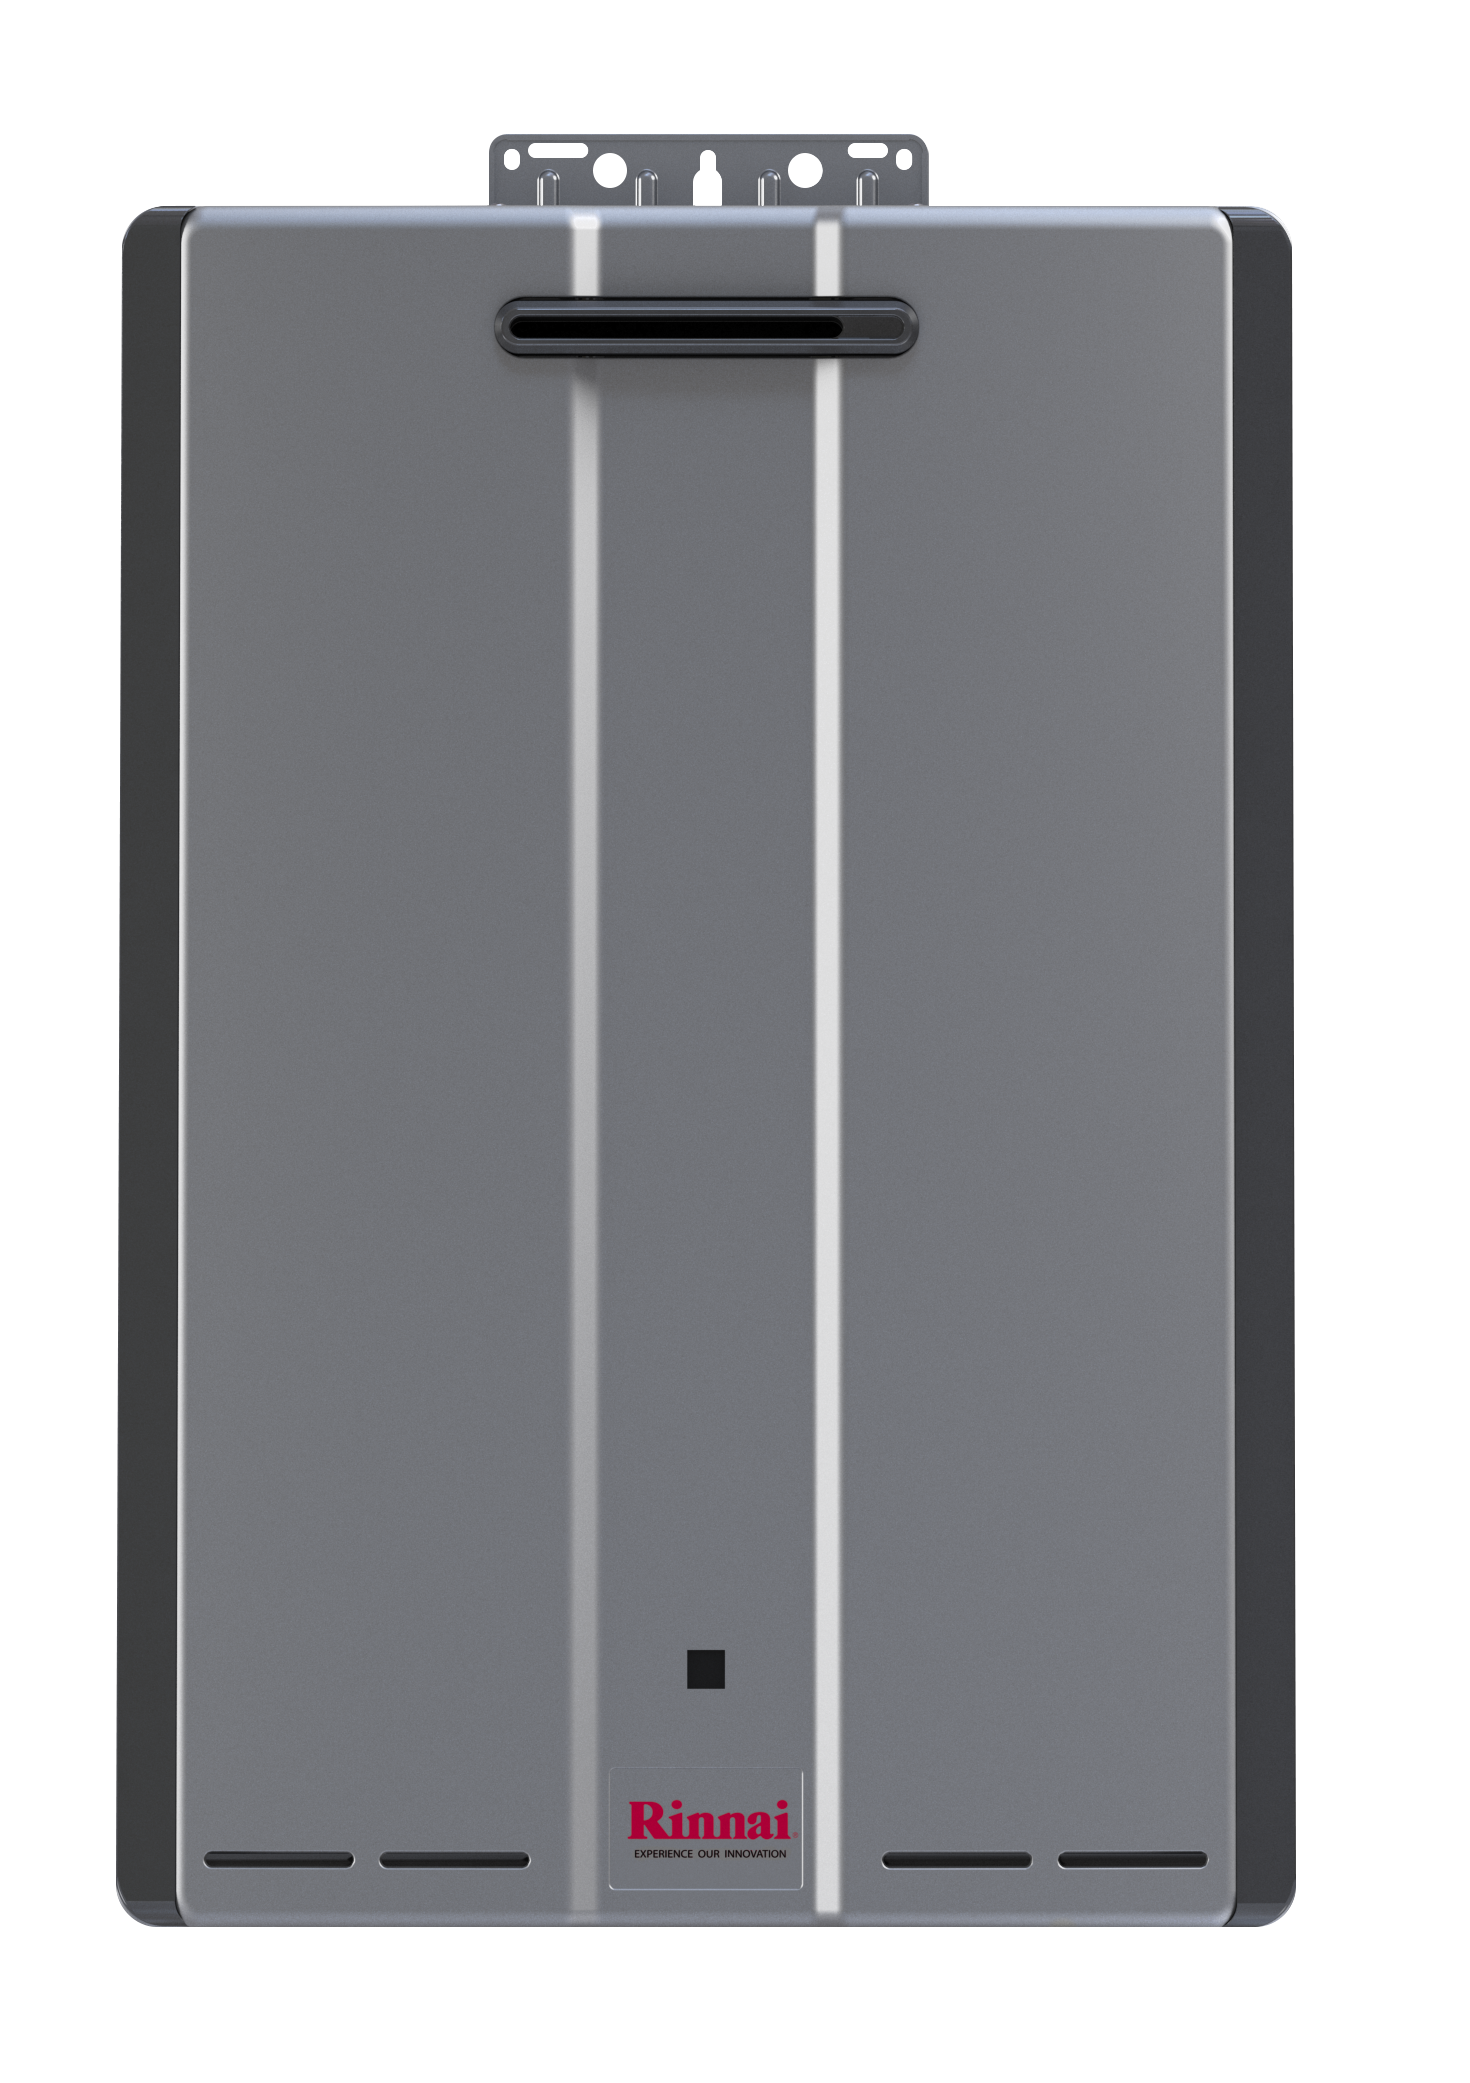 Rinnai RU160e 8.0 GPM Sensei+ Condensing Tankless Hot Water Heater for Outdoor Installation